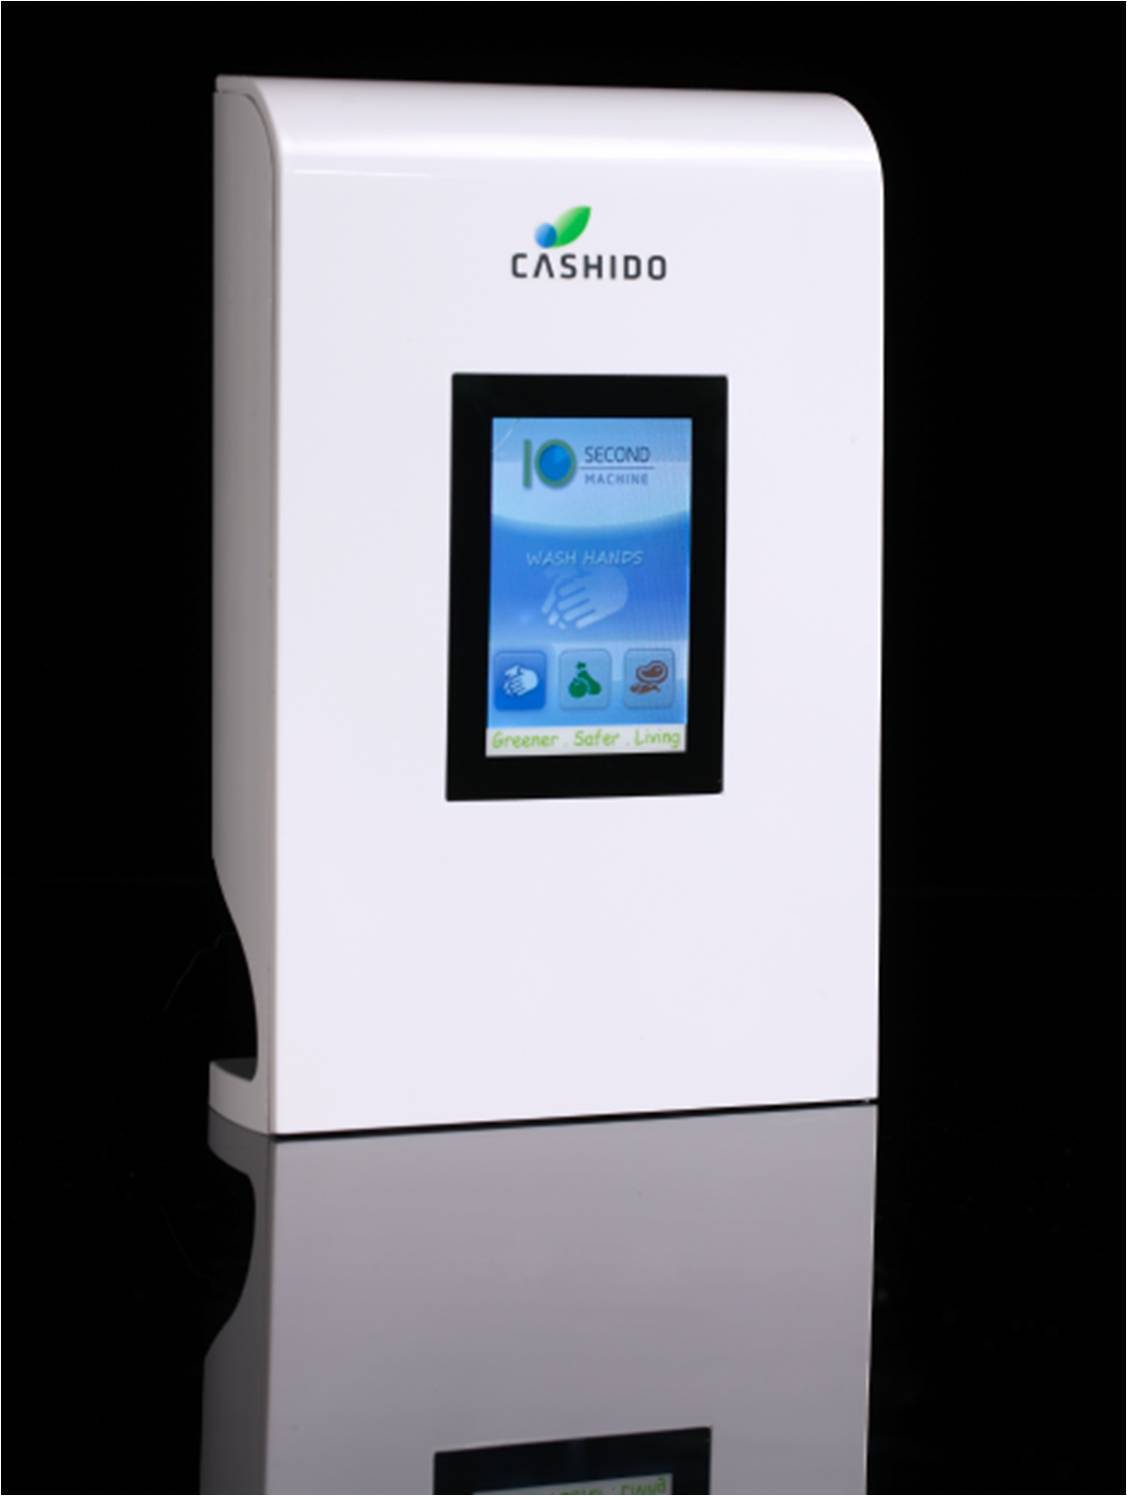 Cashido 10-Second Ozone Antibacterial Systems for Kitchen, Bathroom or Laundry